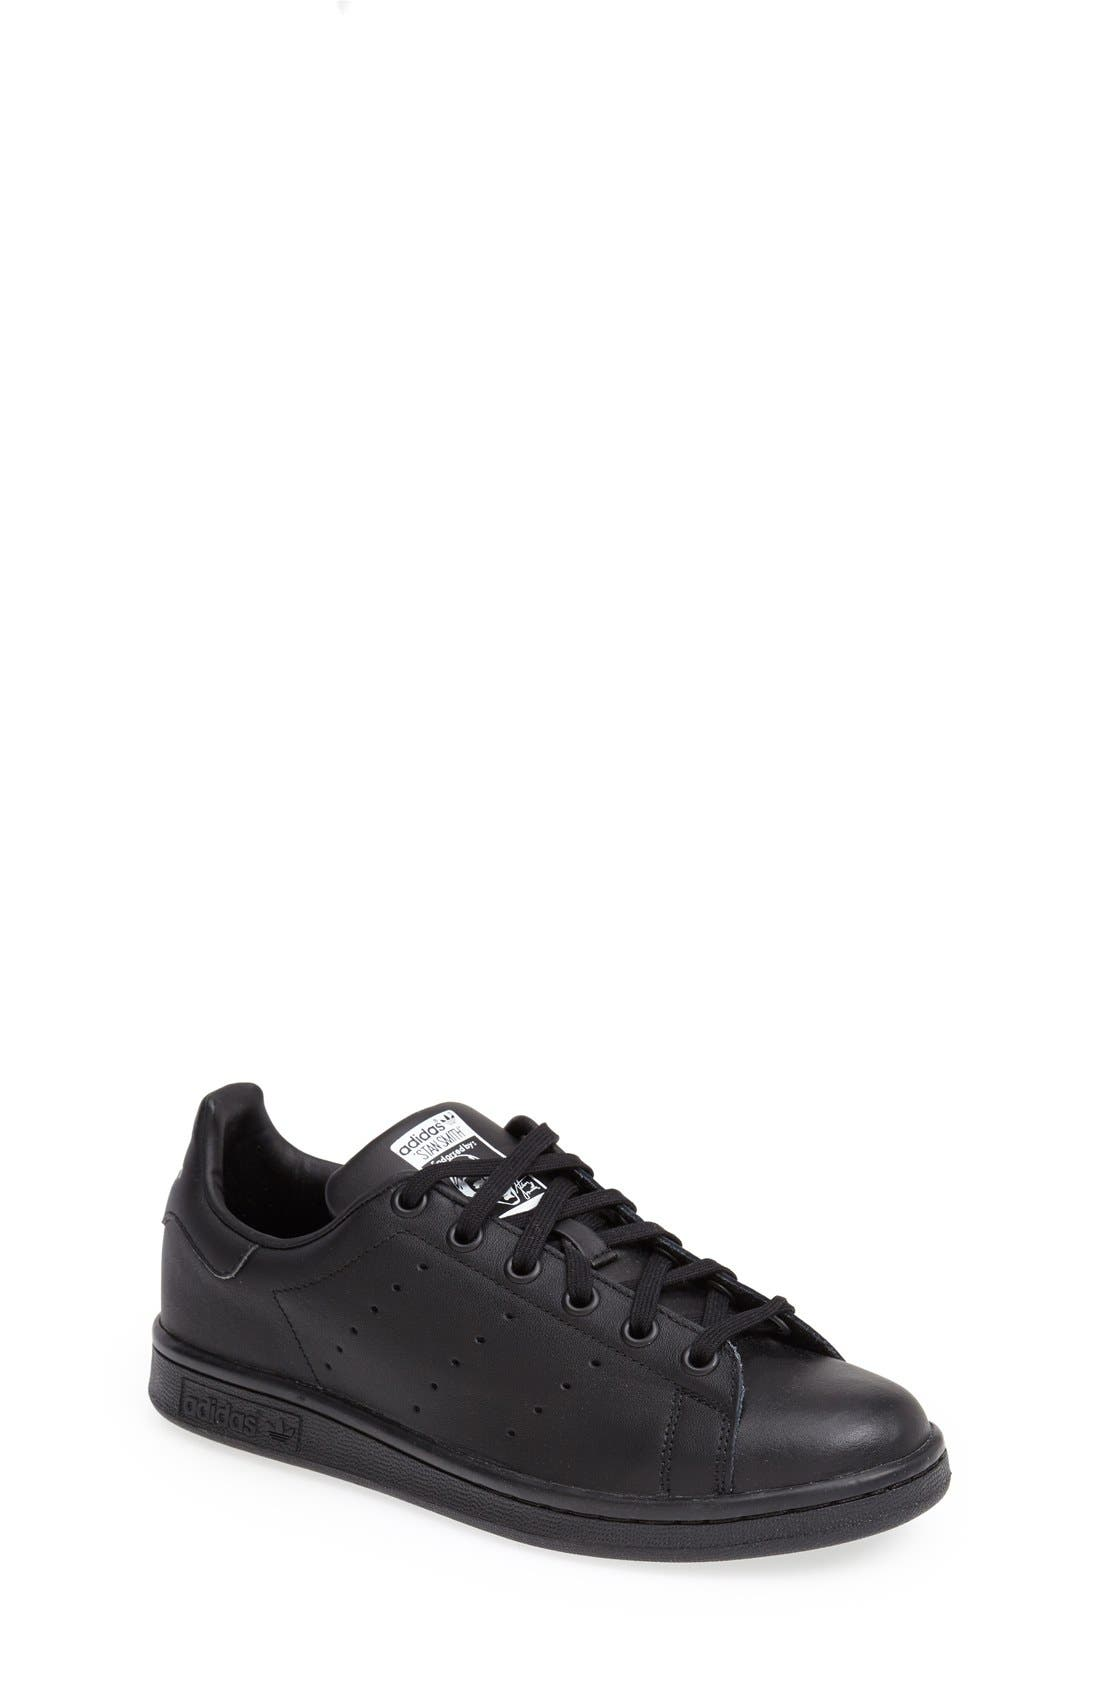 'Stan Smith' Leather Sneaker,                             Main thumbnail 2, color,